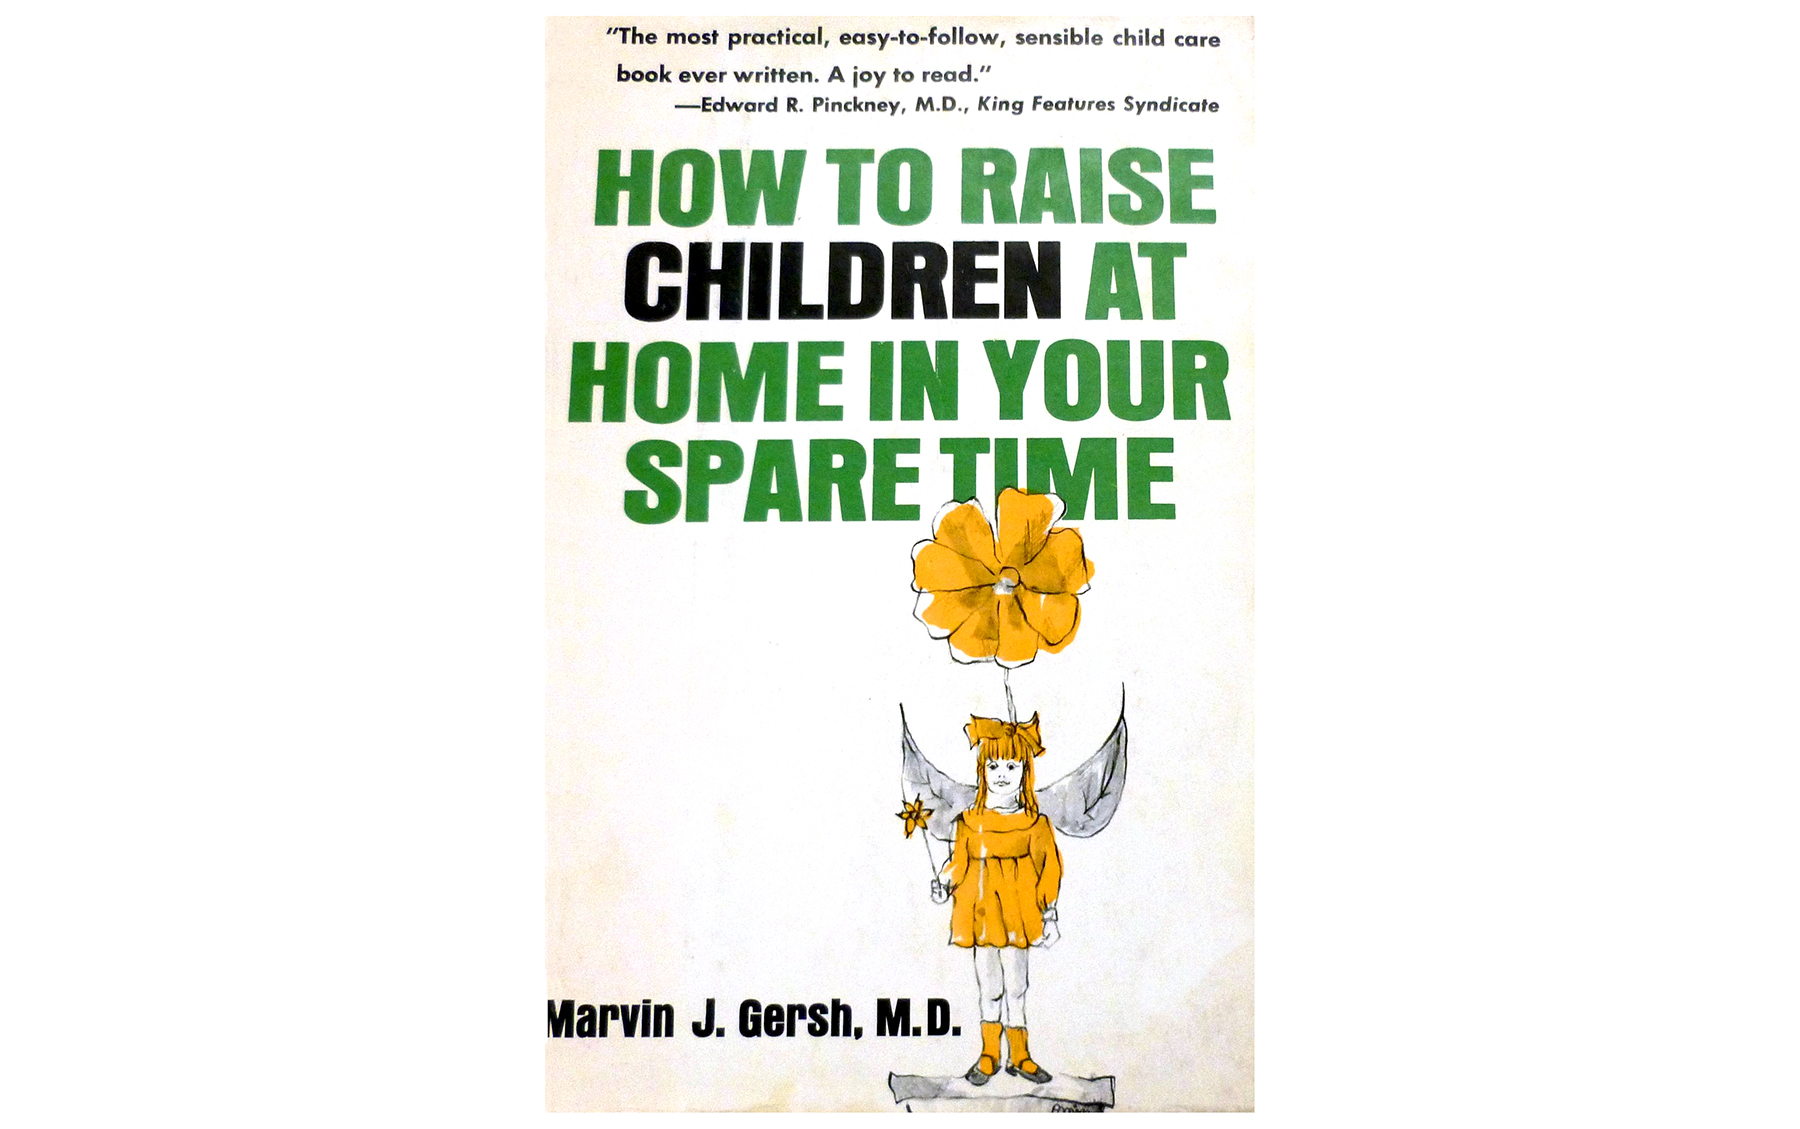 How to Raise Children at Home in Your Spare Time, by Marvin J. Gersh